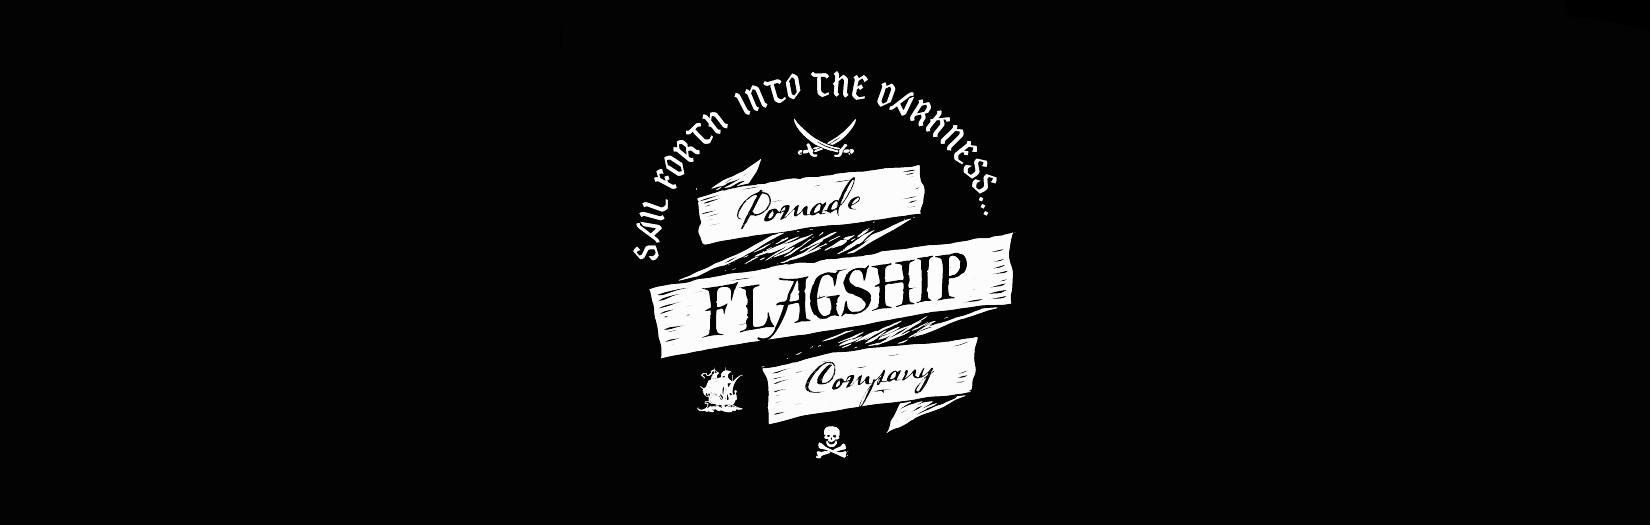 Flagship Pomade Company | Most Ambitious Brewer